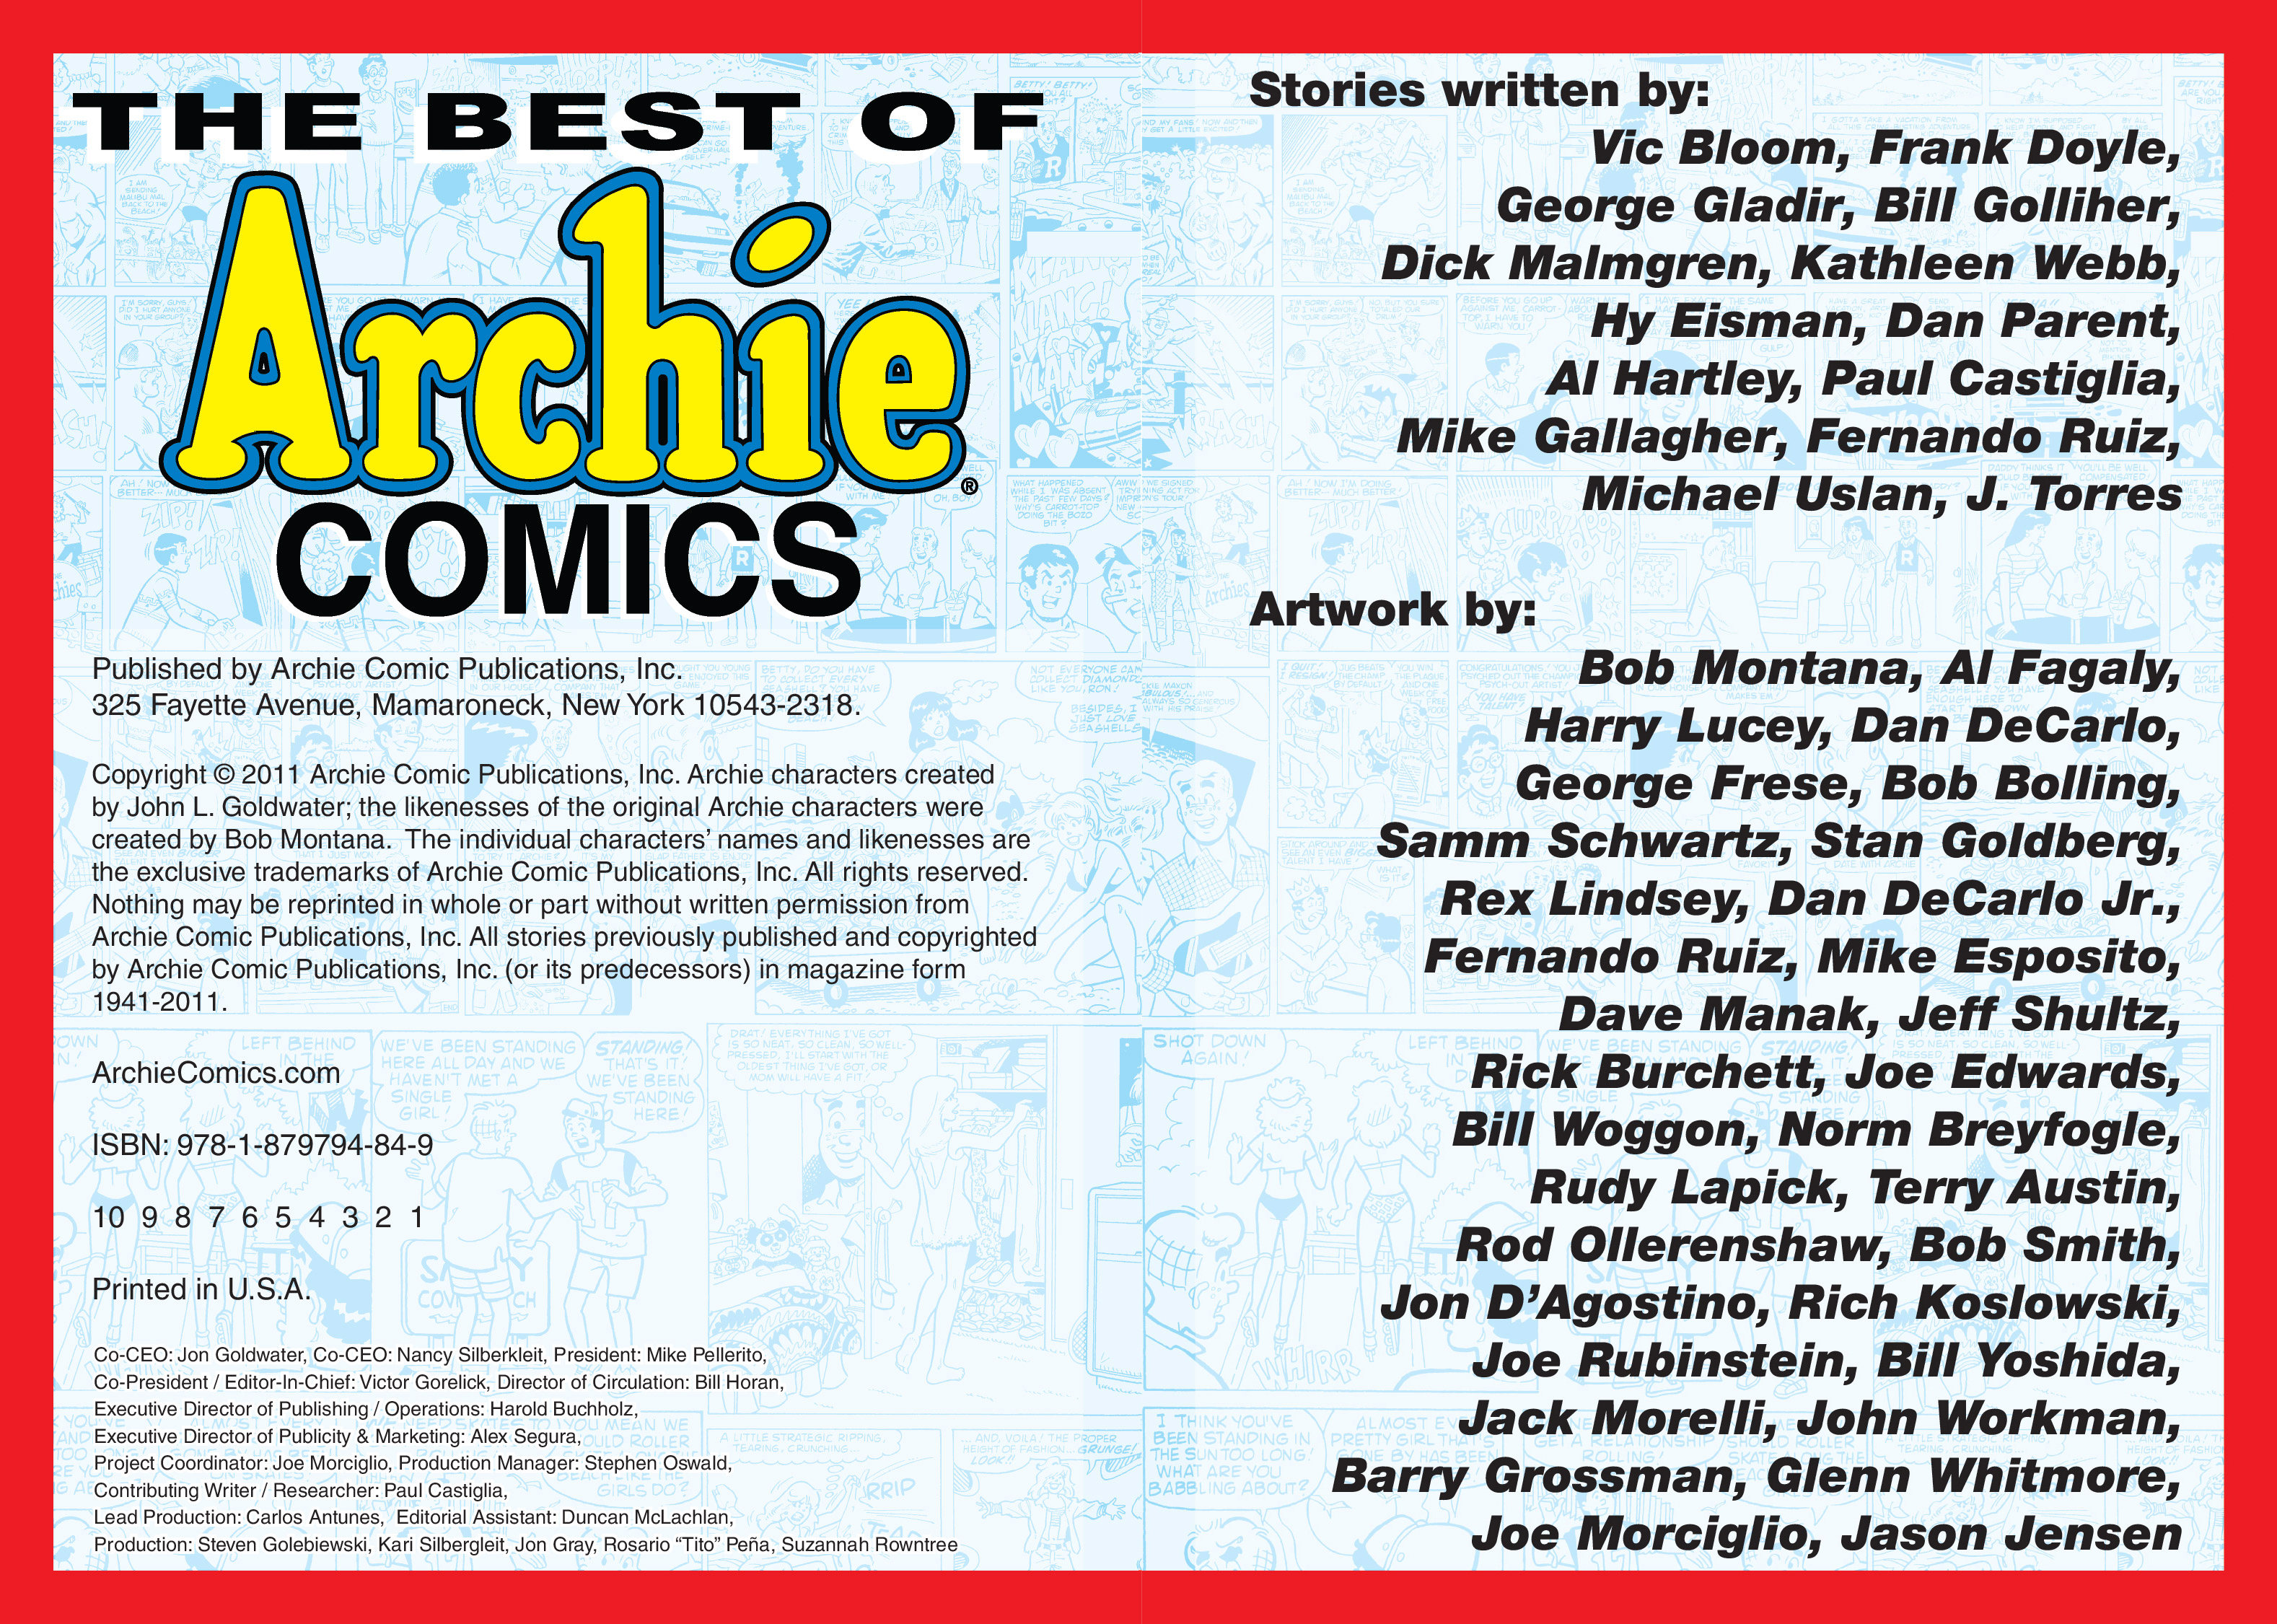 Read online The Best of Archie Comics comic -  Issue # TPB 1 (Part 1) - 4